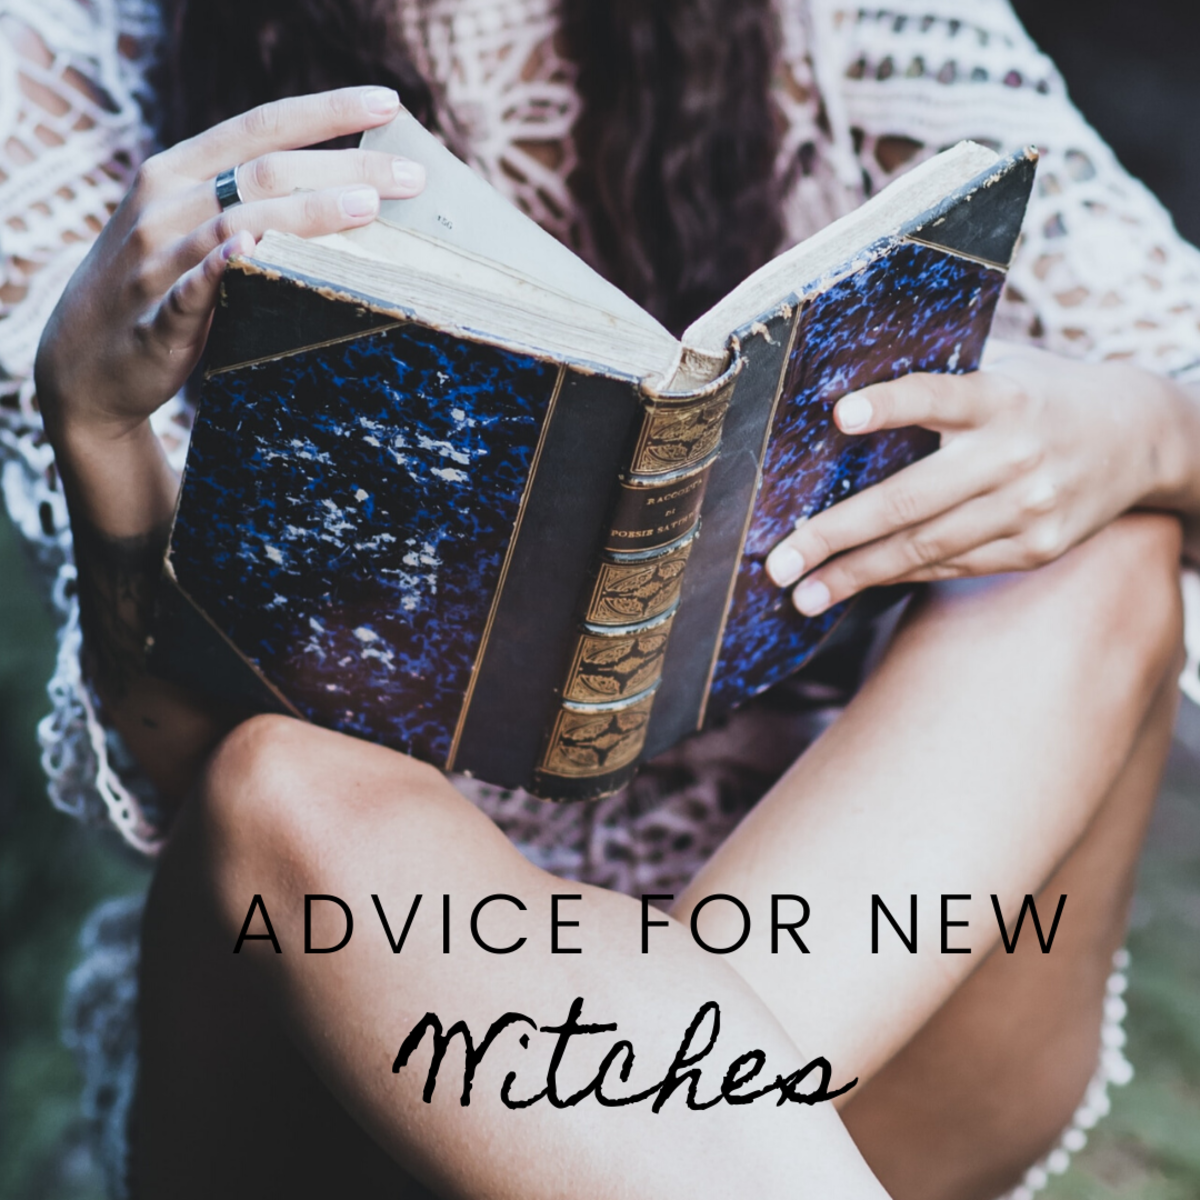 Advice for New Witches